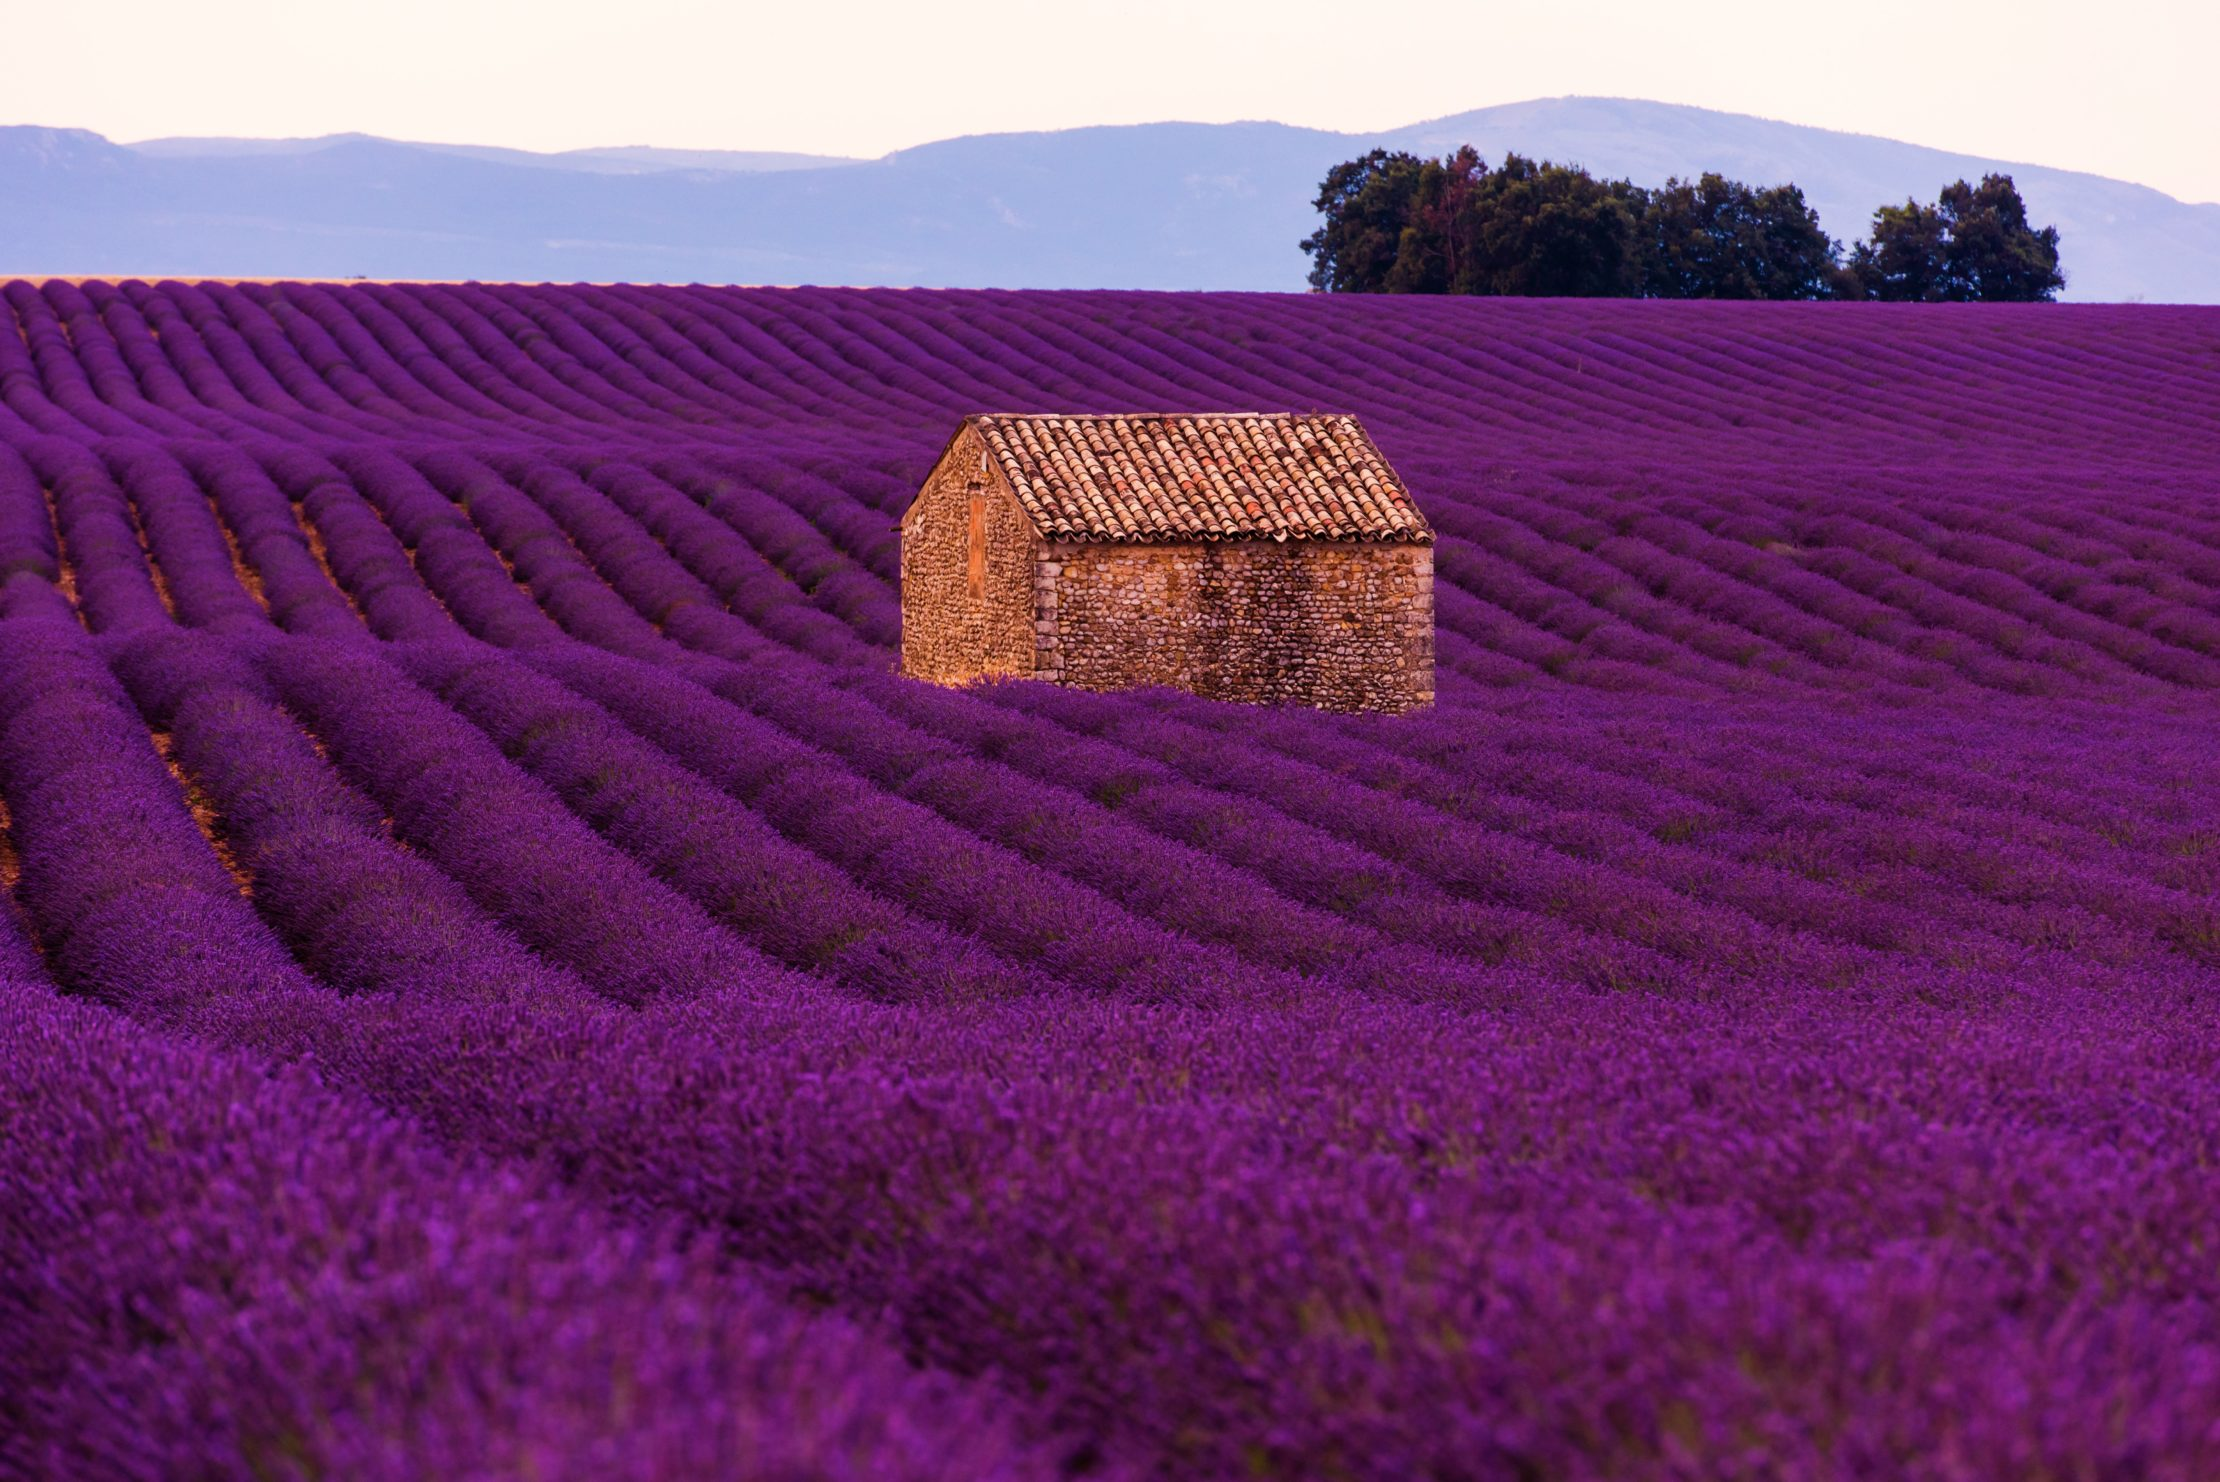 Iconic lavender fields of Provence, France look like an impressionist painting